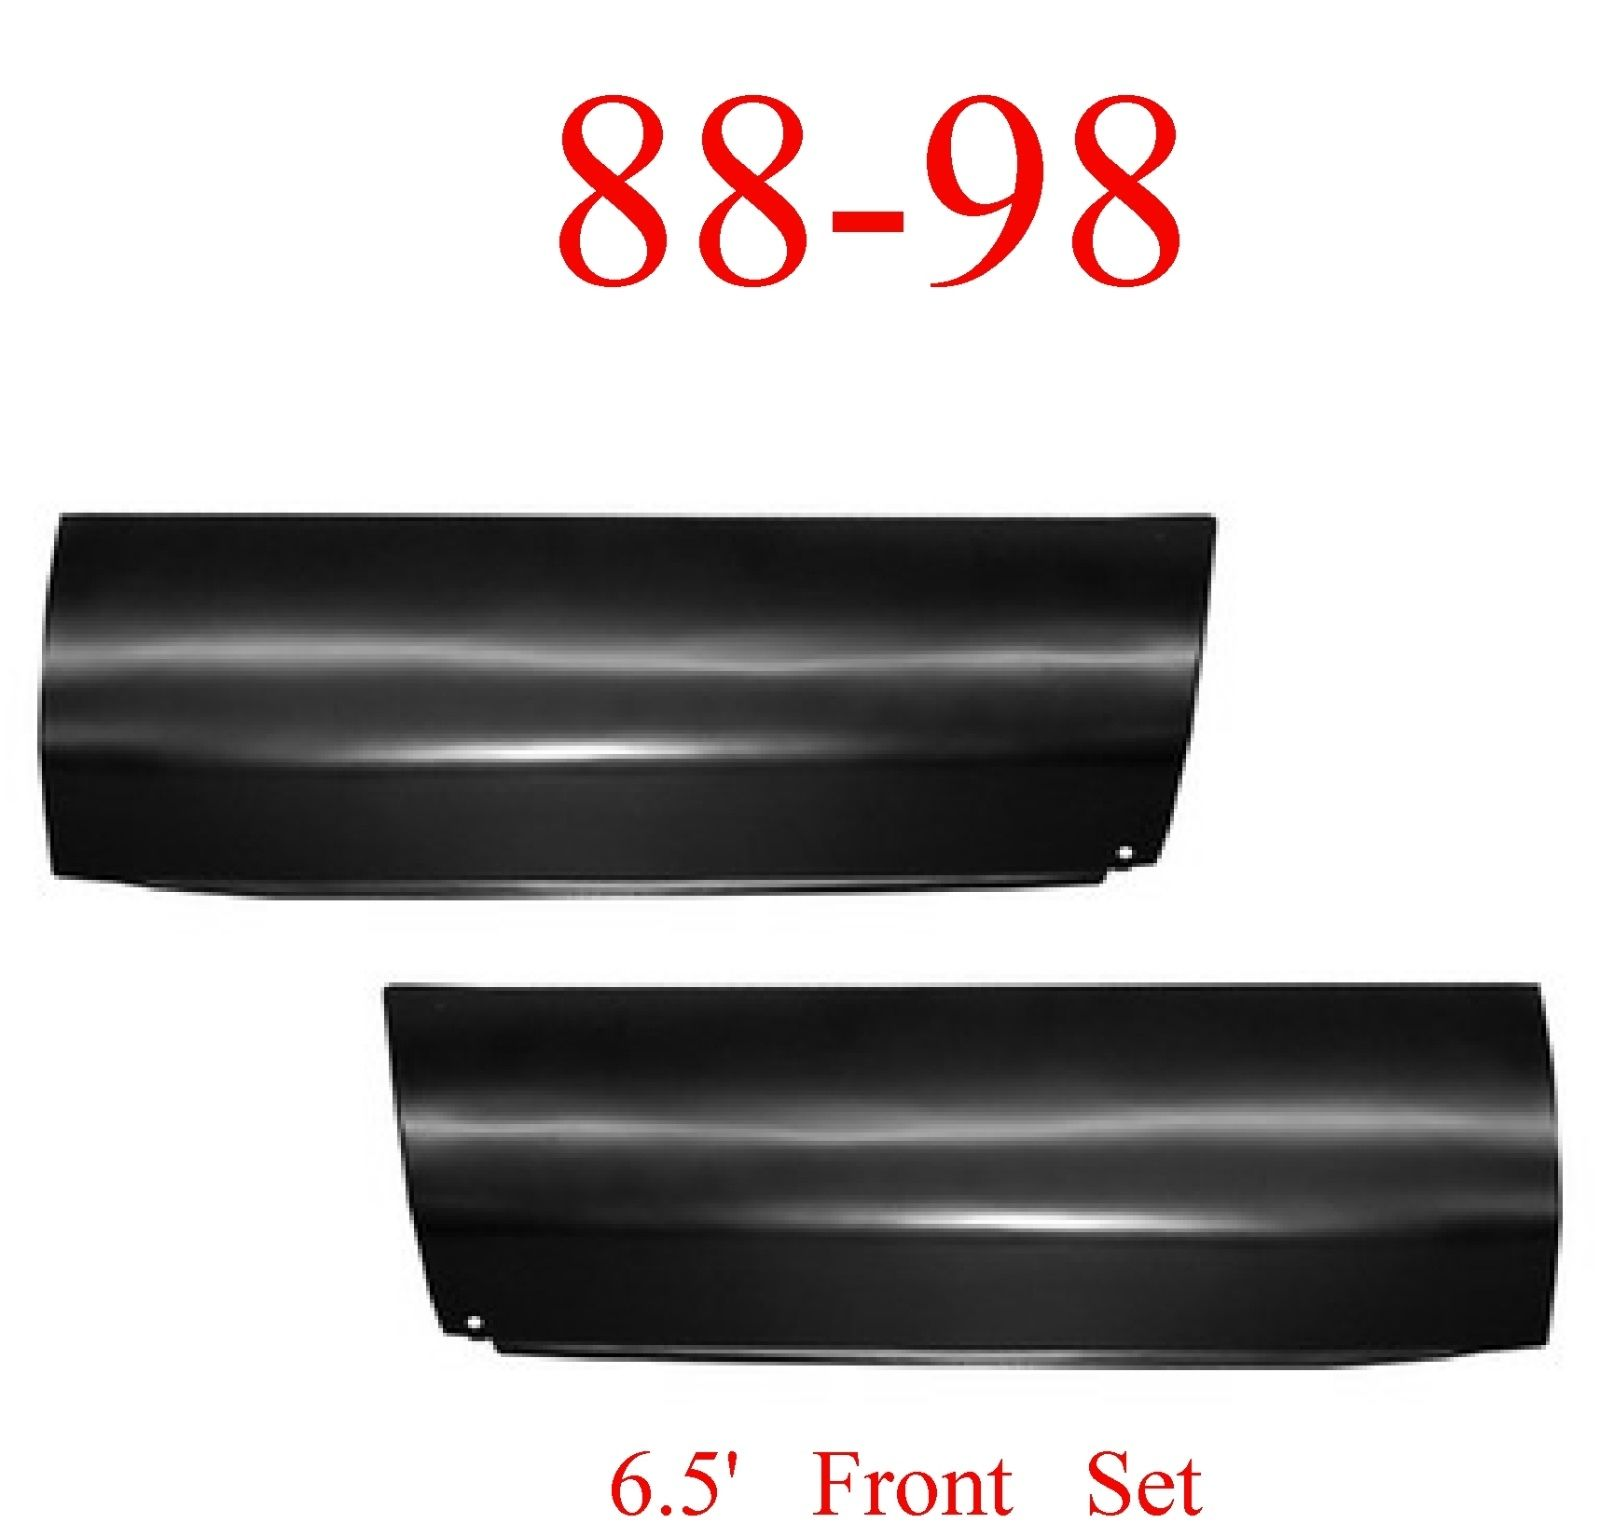 88-98 Chevy 6.5' Front Lower Bed Patch Set